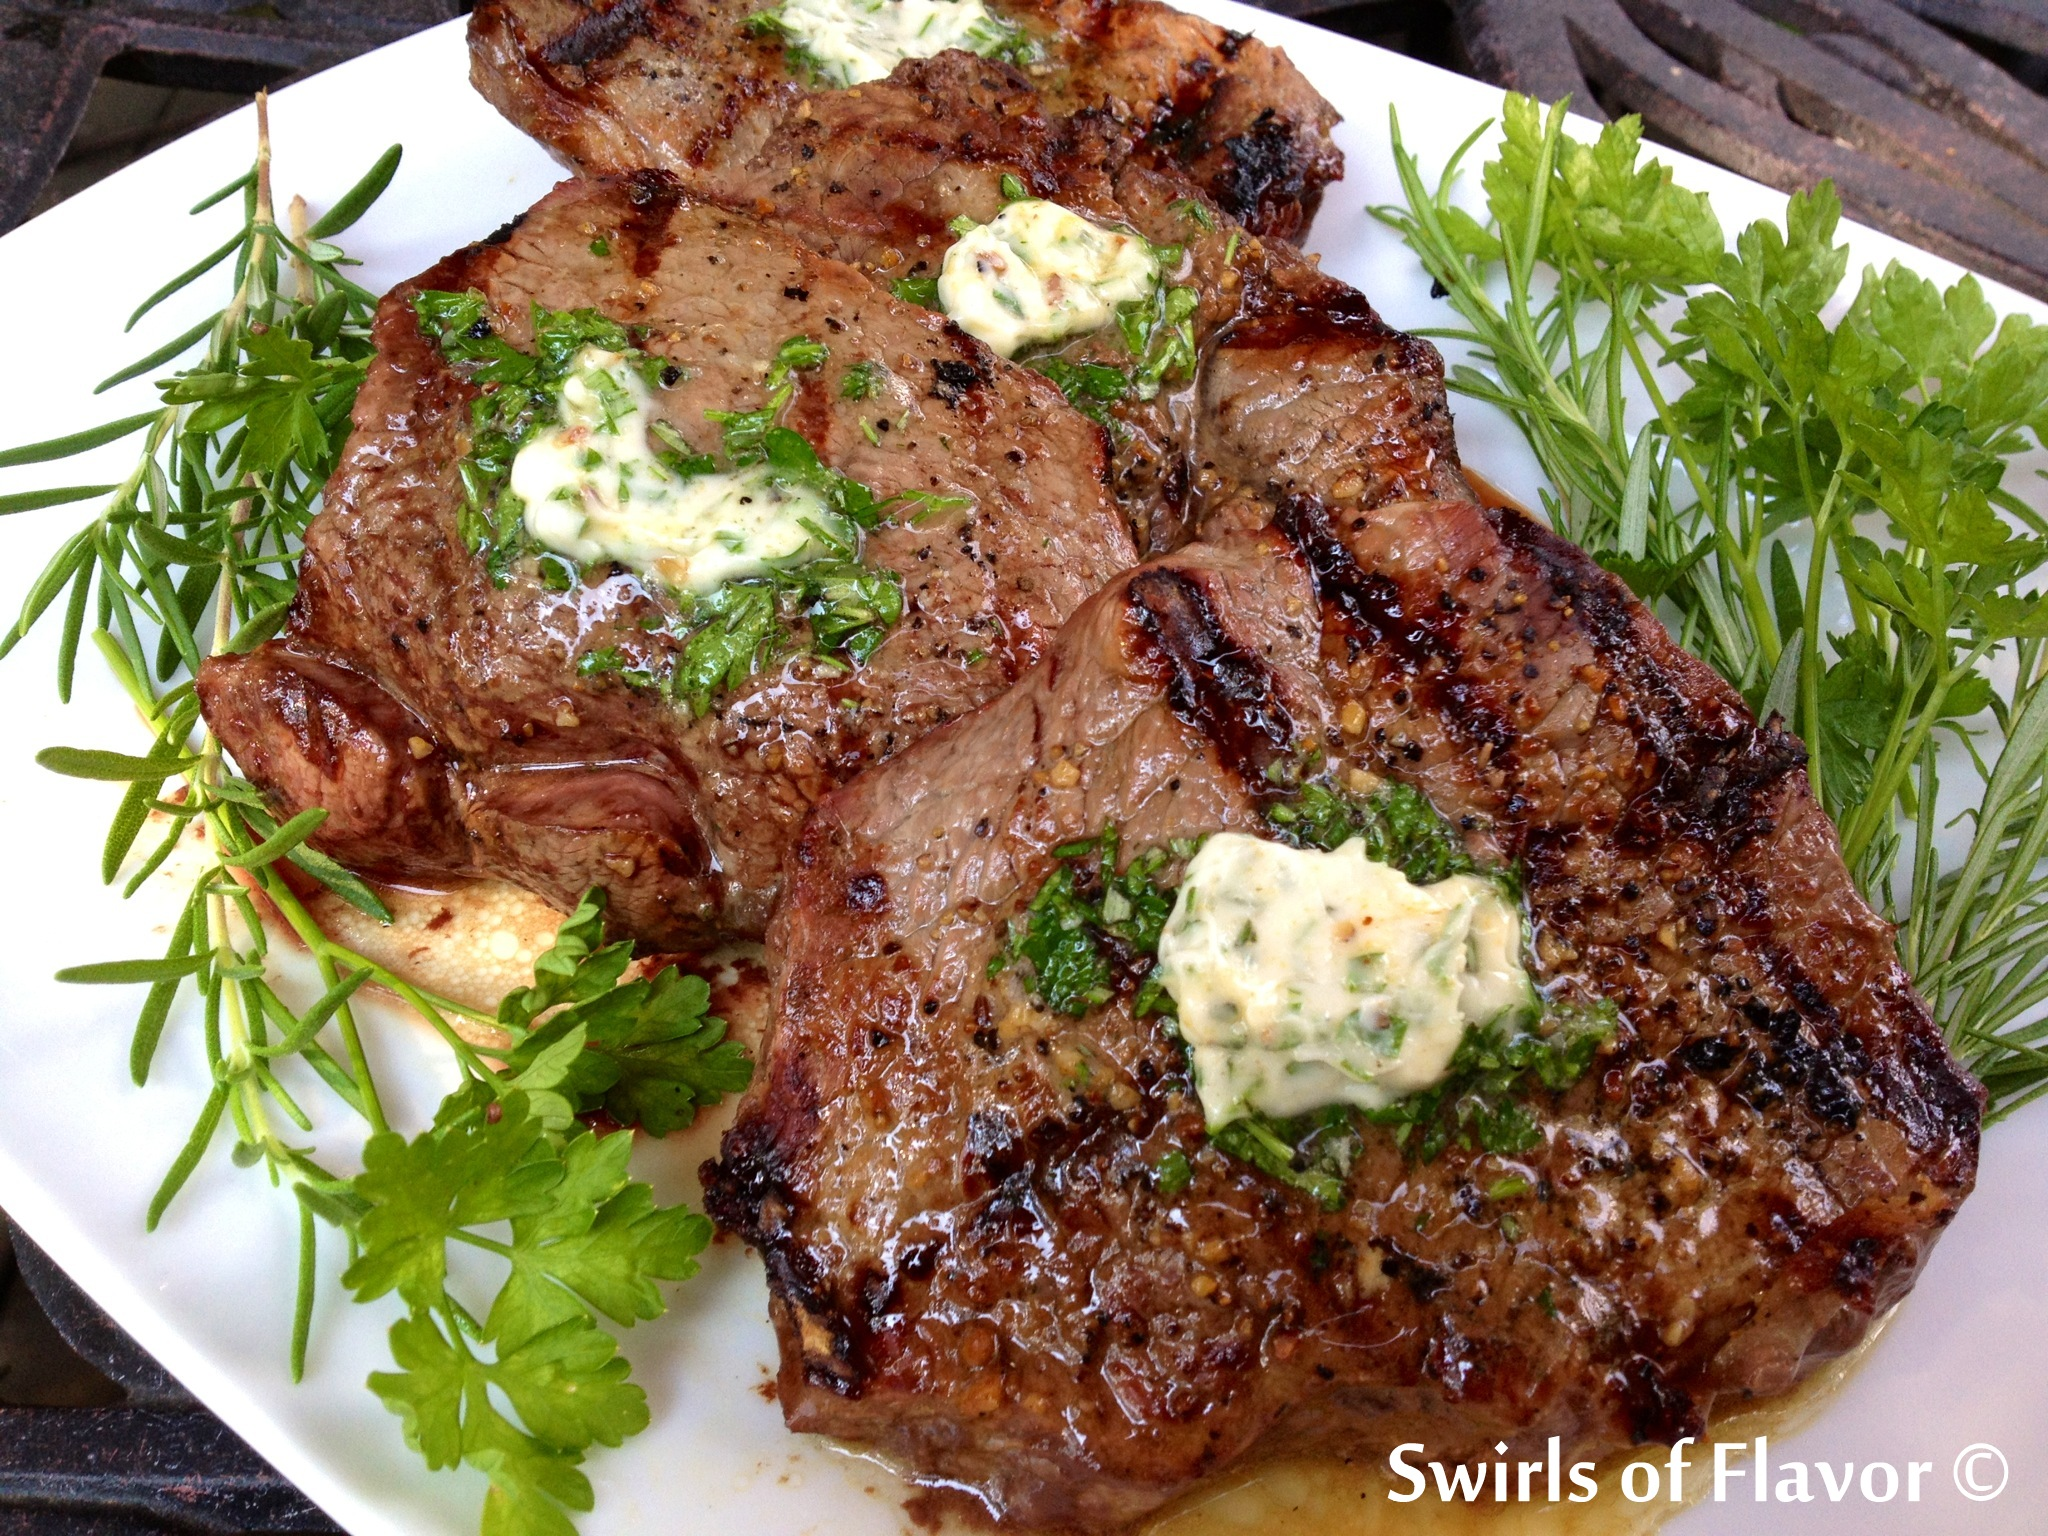 Sirloin with Herb Butter